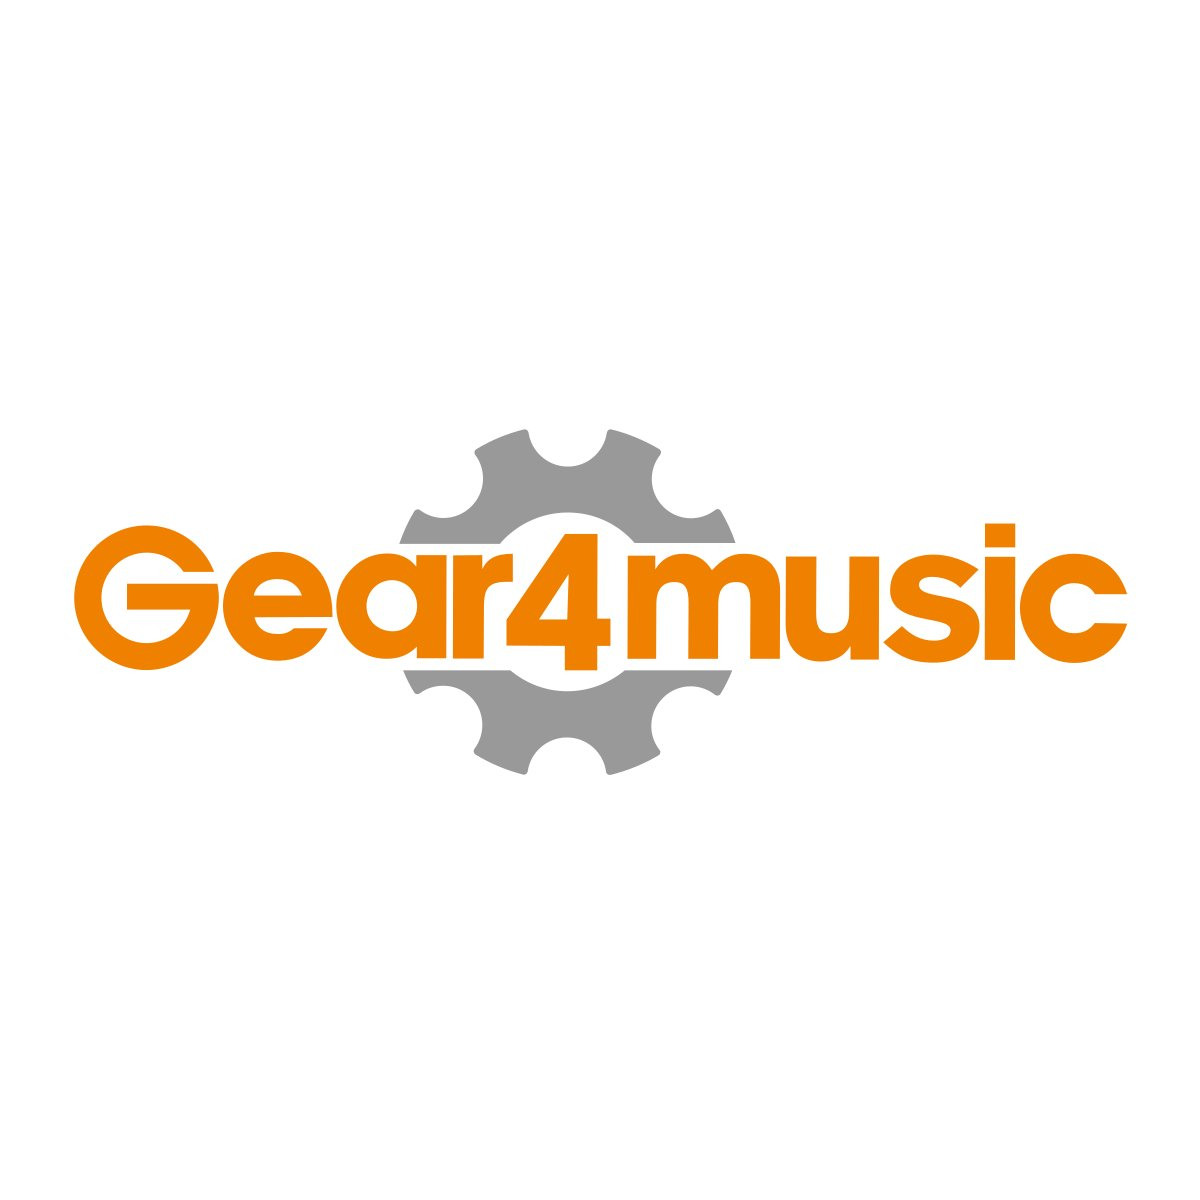 Piano Digital DP-10X de Gear4music + Pack de Accesorios - Blanco